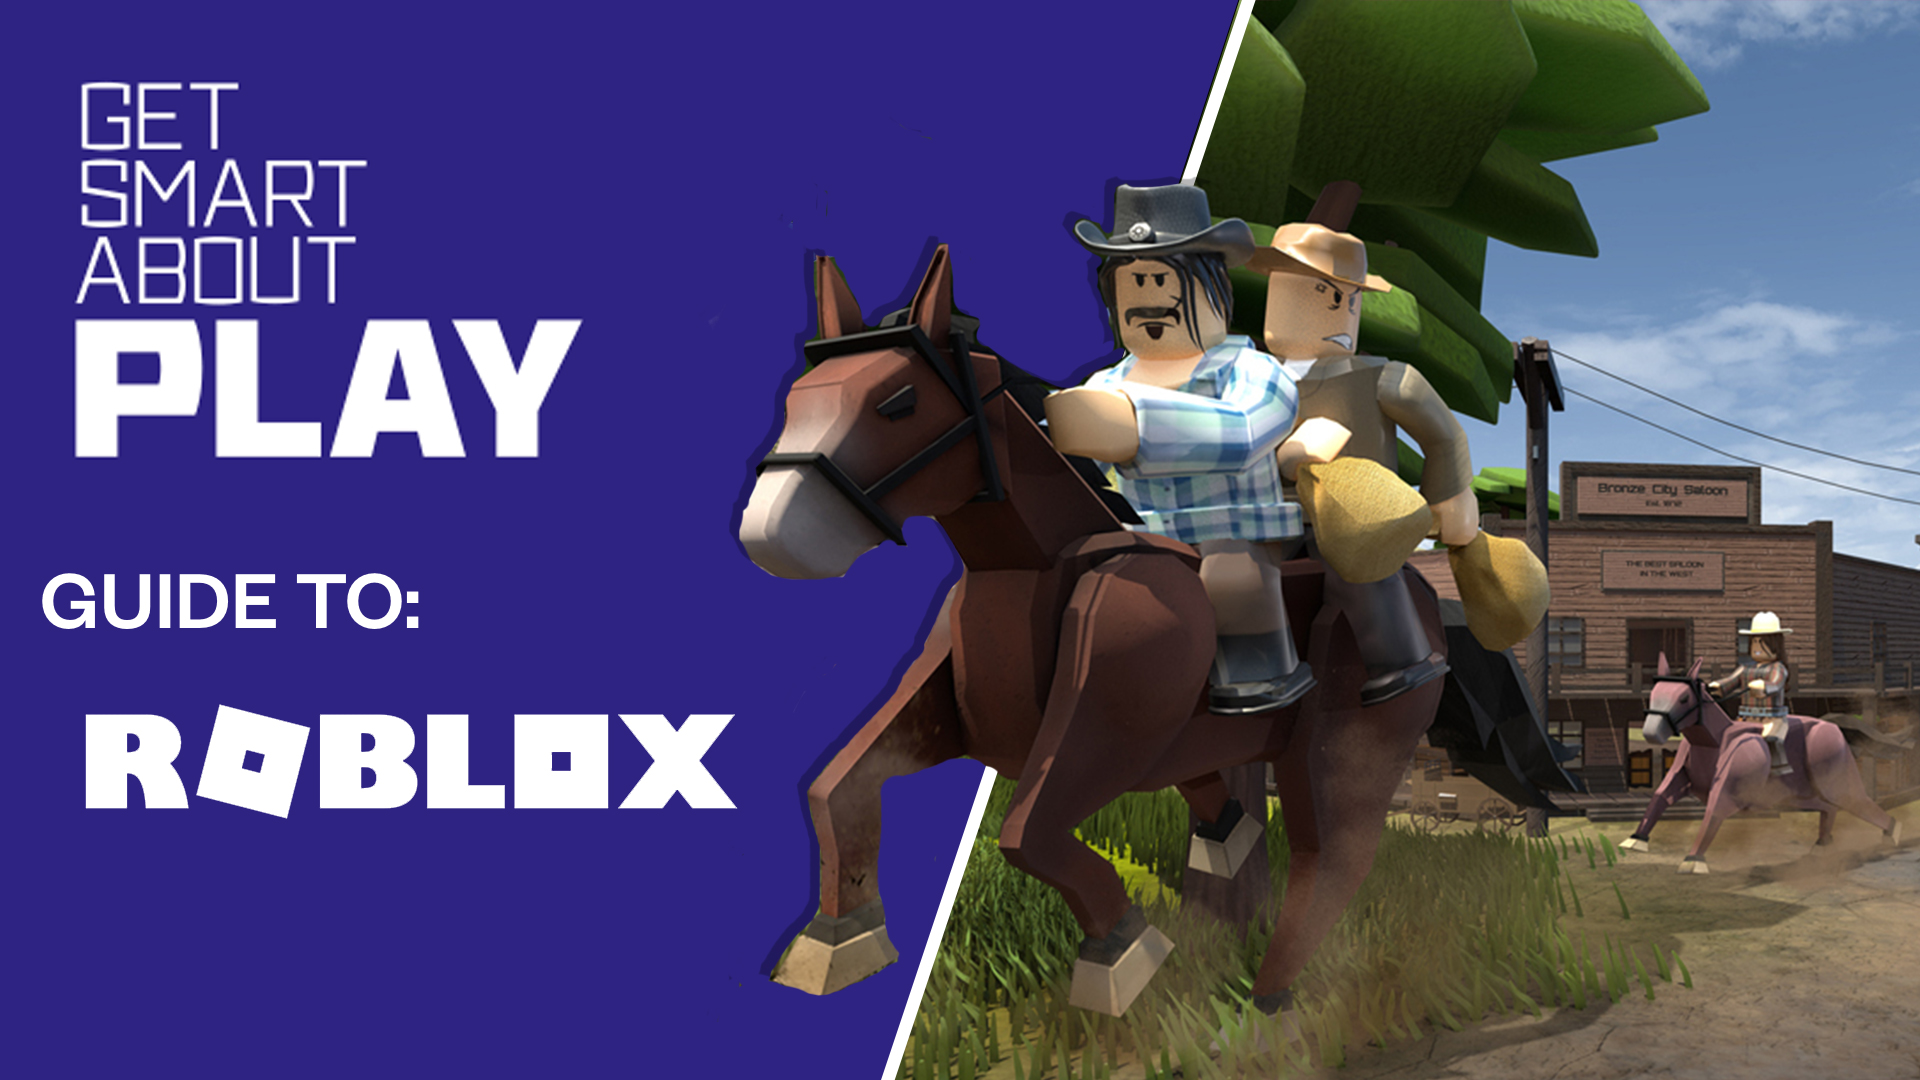 Roblox Wolves Life 3 Vs Horse World Which Is Better Parents Guide Roblox Pegi 7